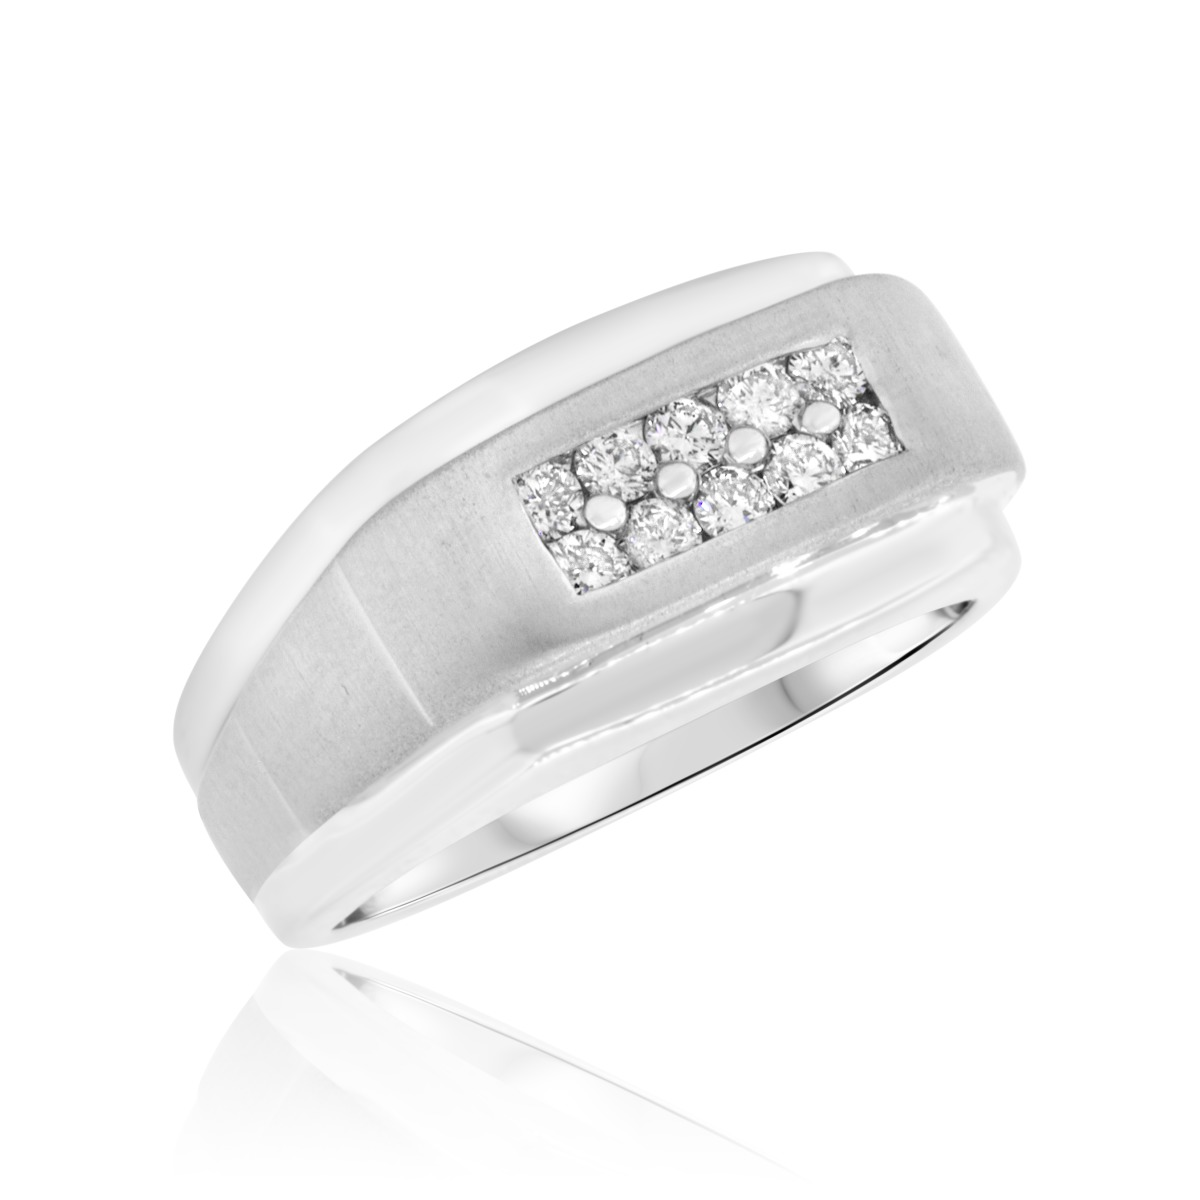 1 2 CT TW Diamond Mens Wedding Band 10K White Gold